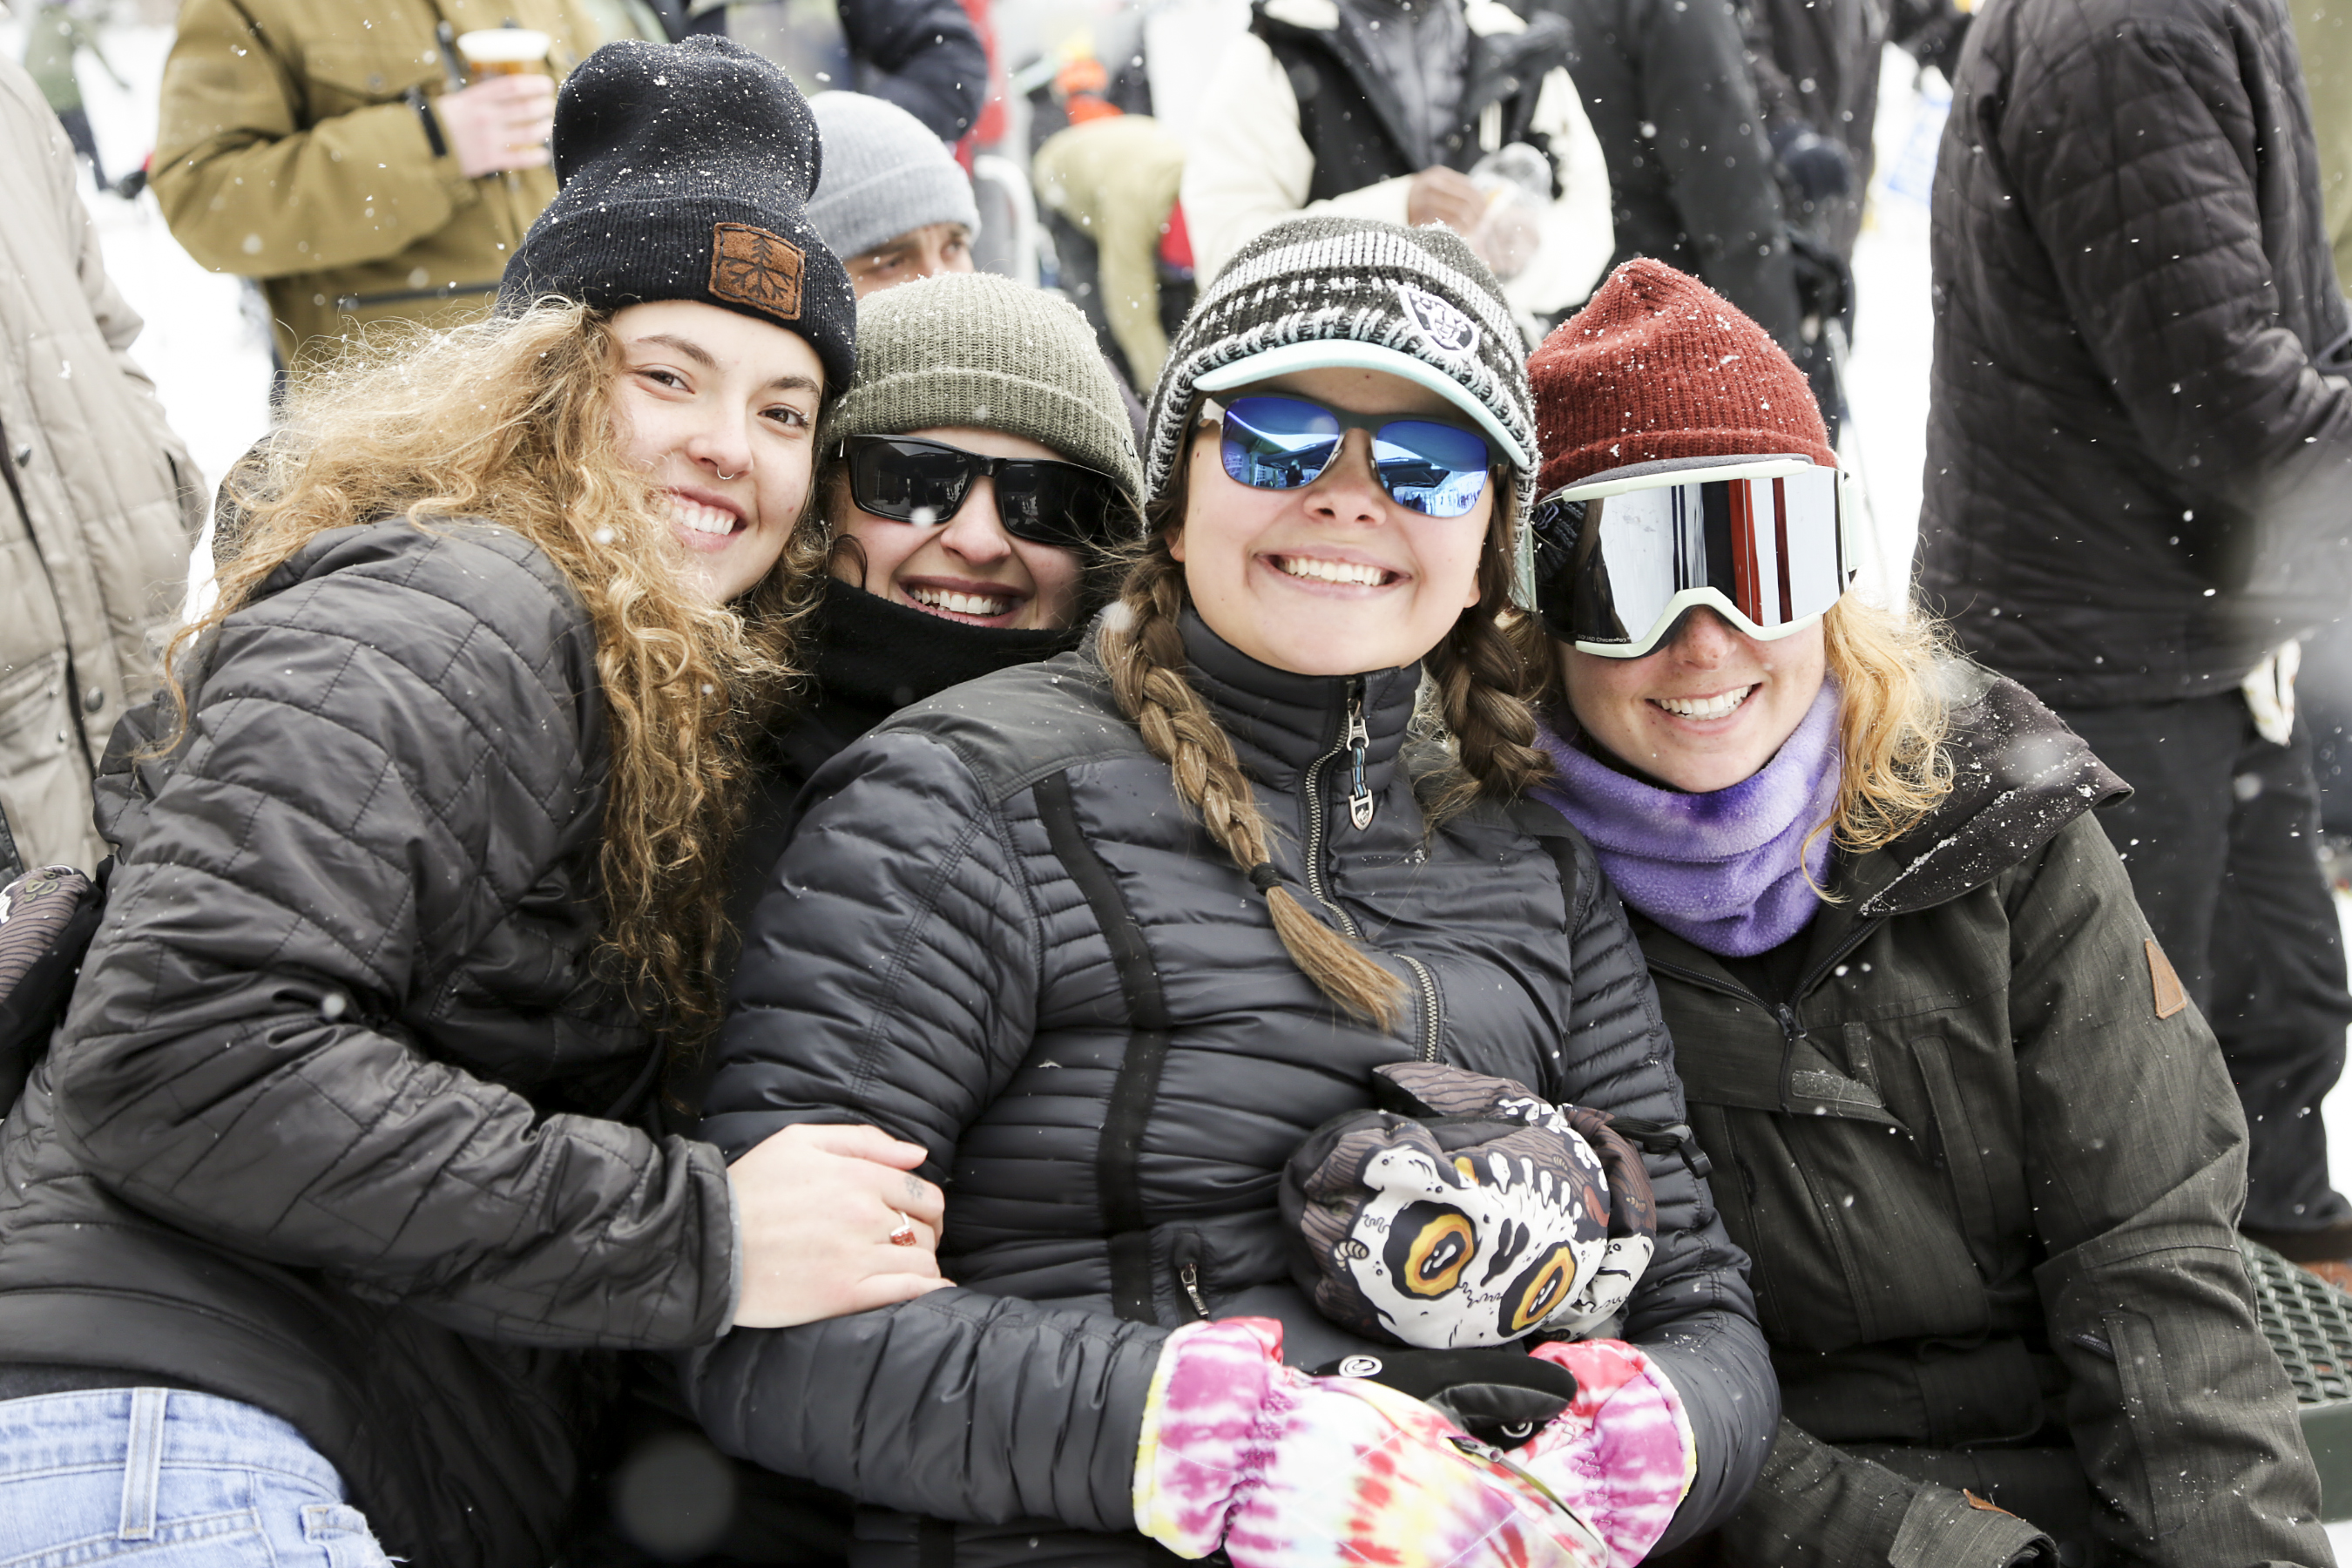 Natalia Veach, Linsday Holland, Sara Staschke, and Sophie LeVert having a good time.